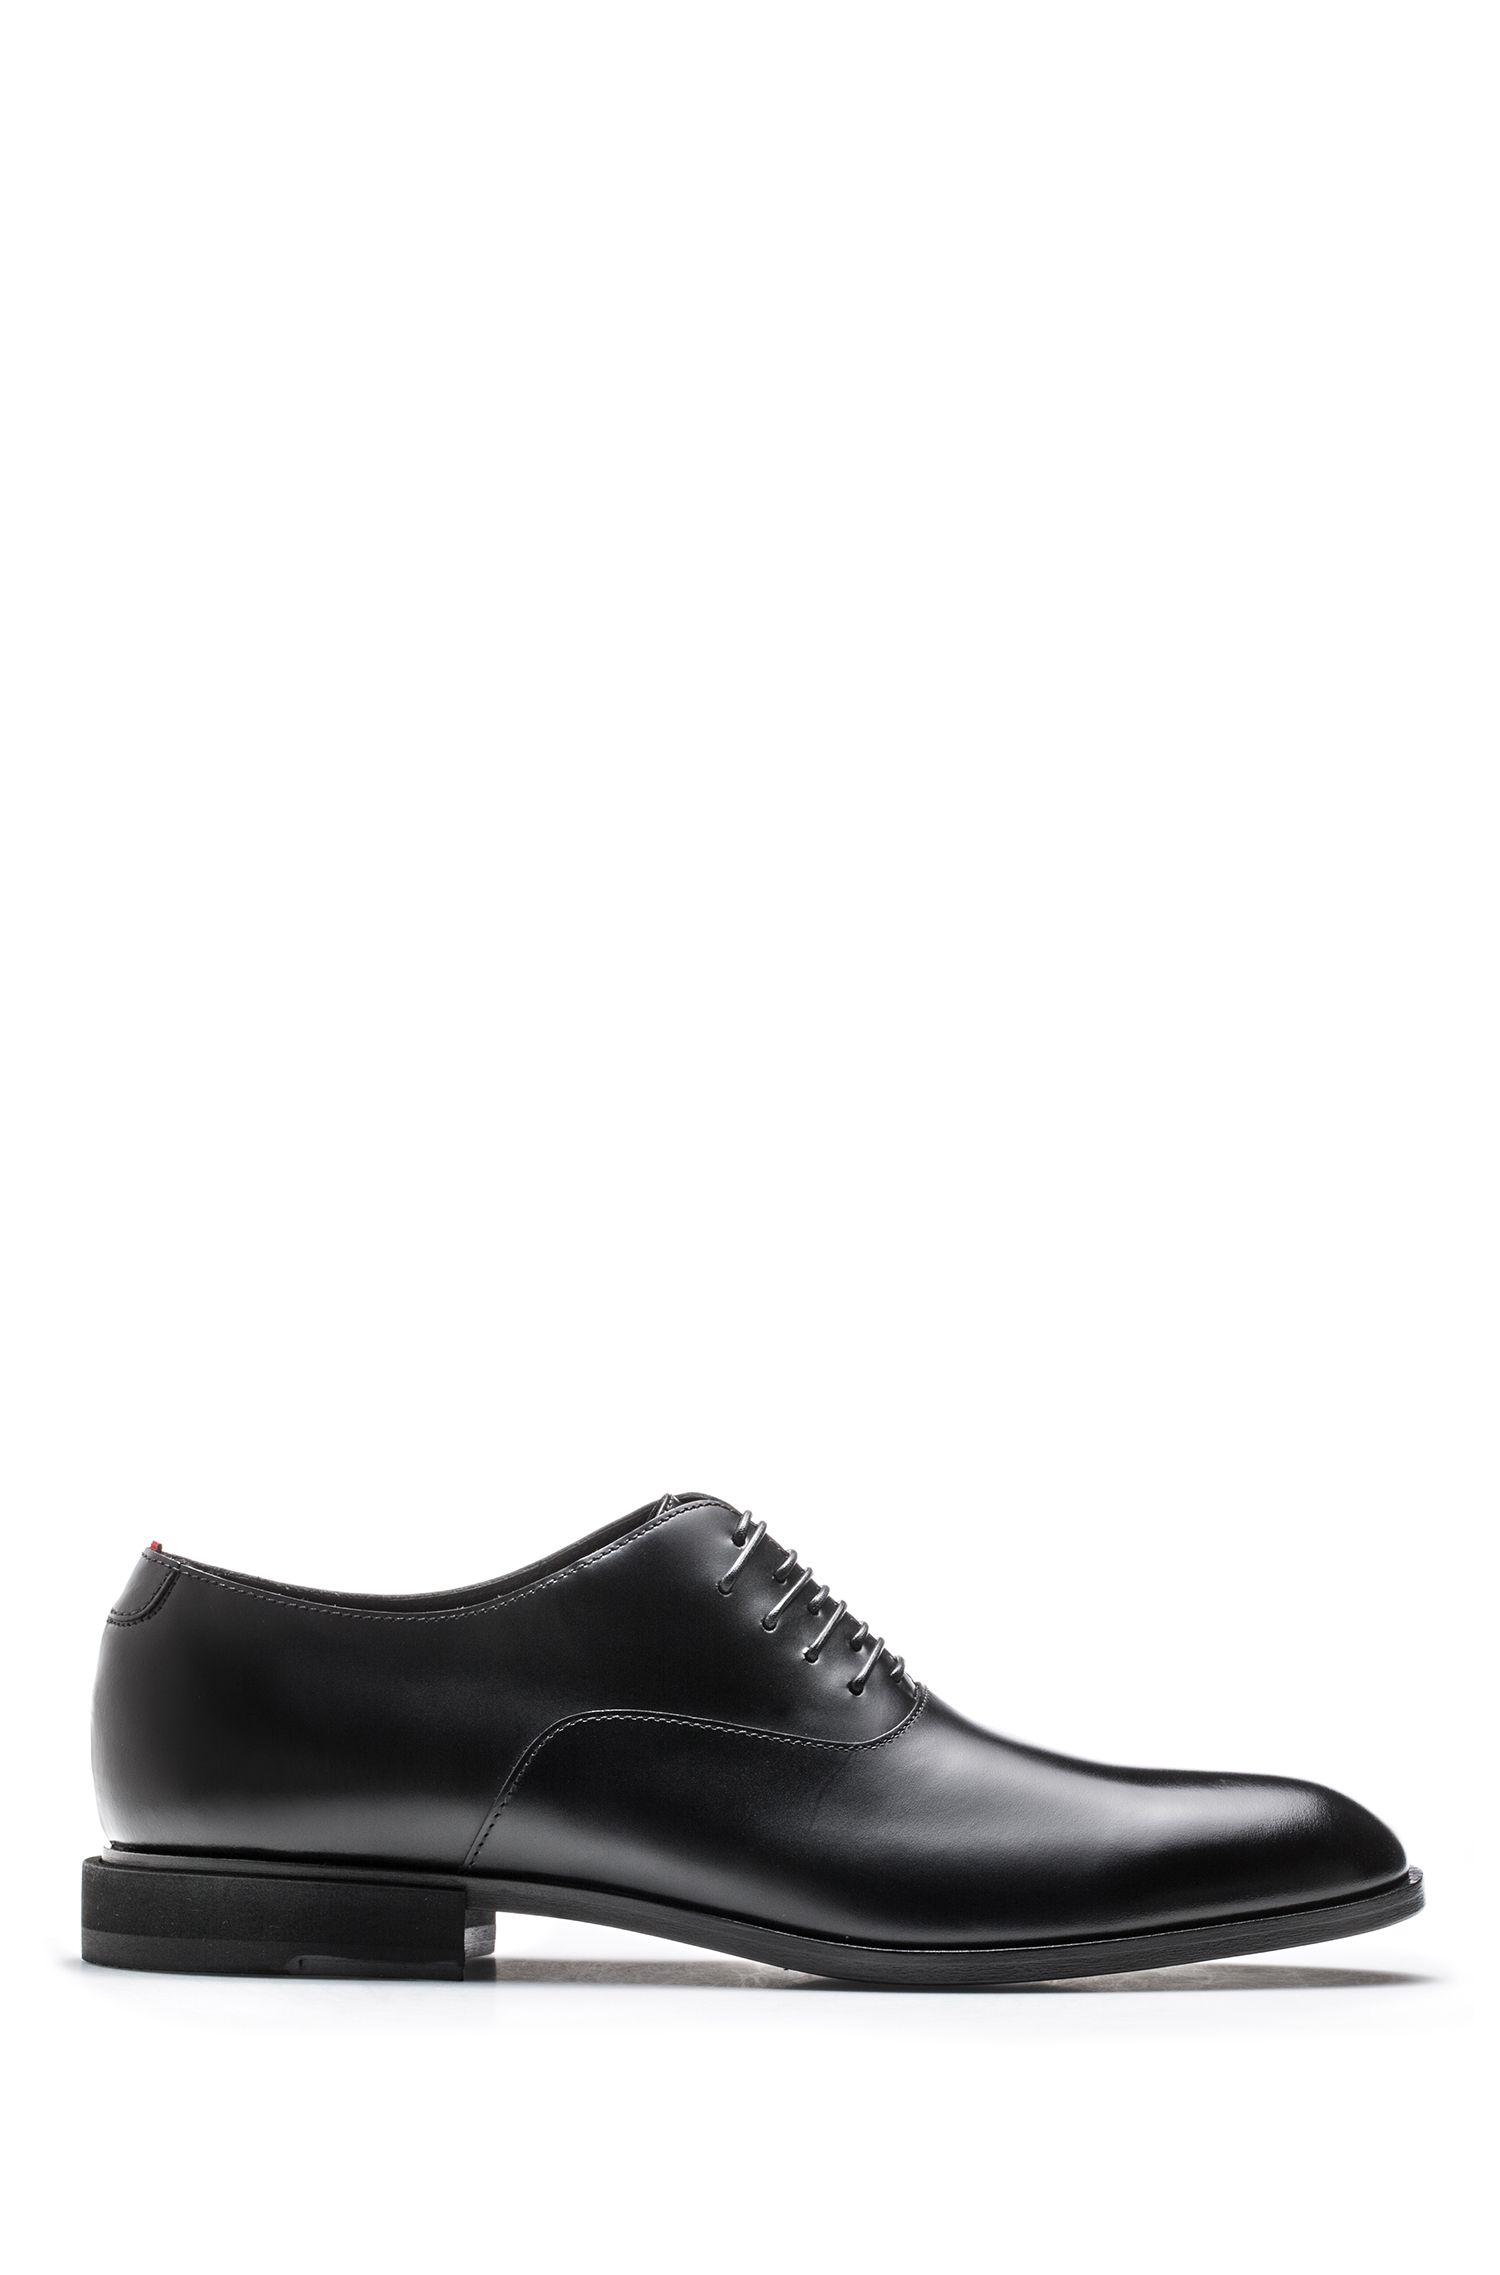 Scarpe Oxford in pelle di vitello con originale allacciatura